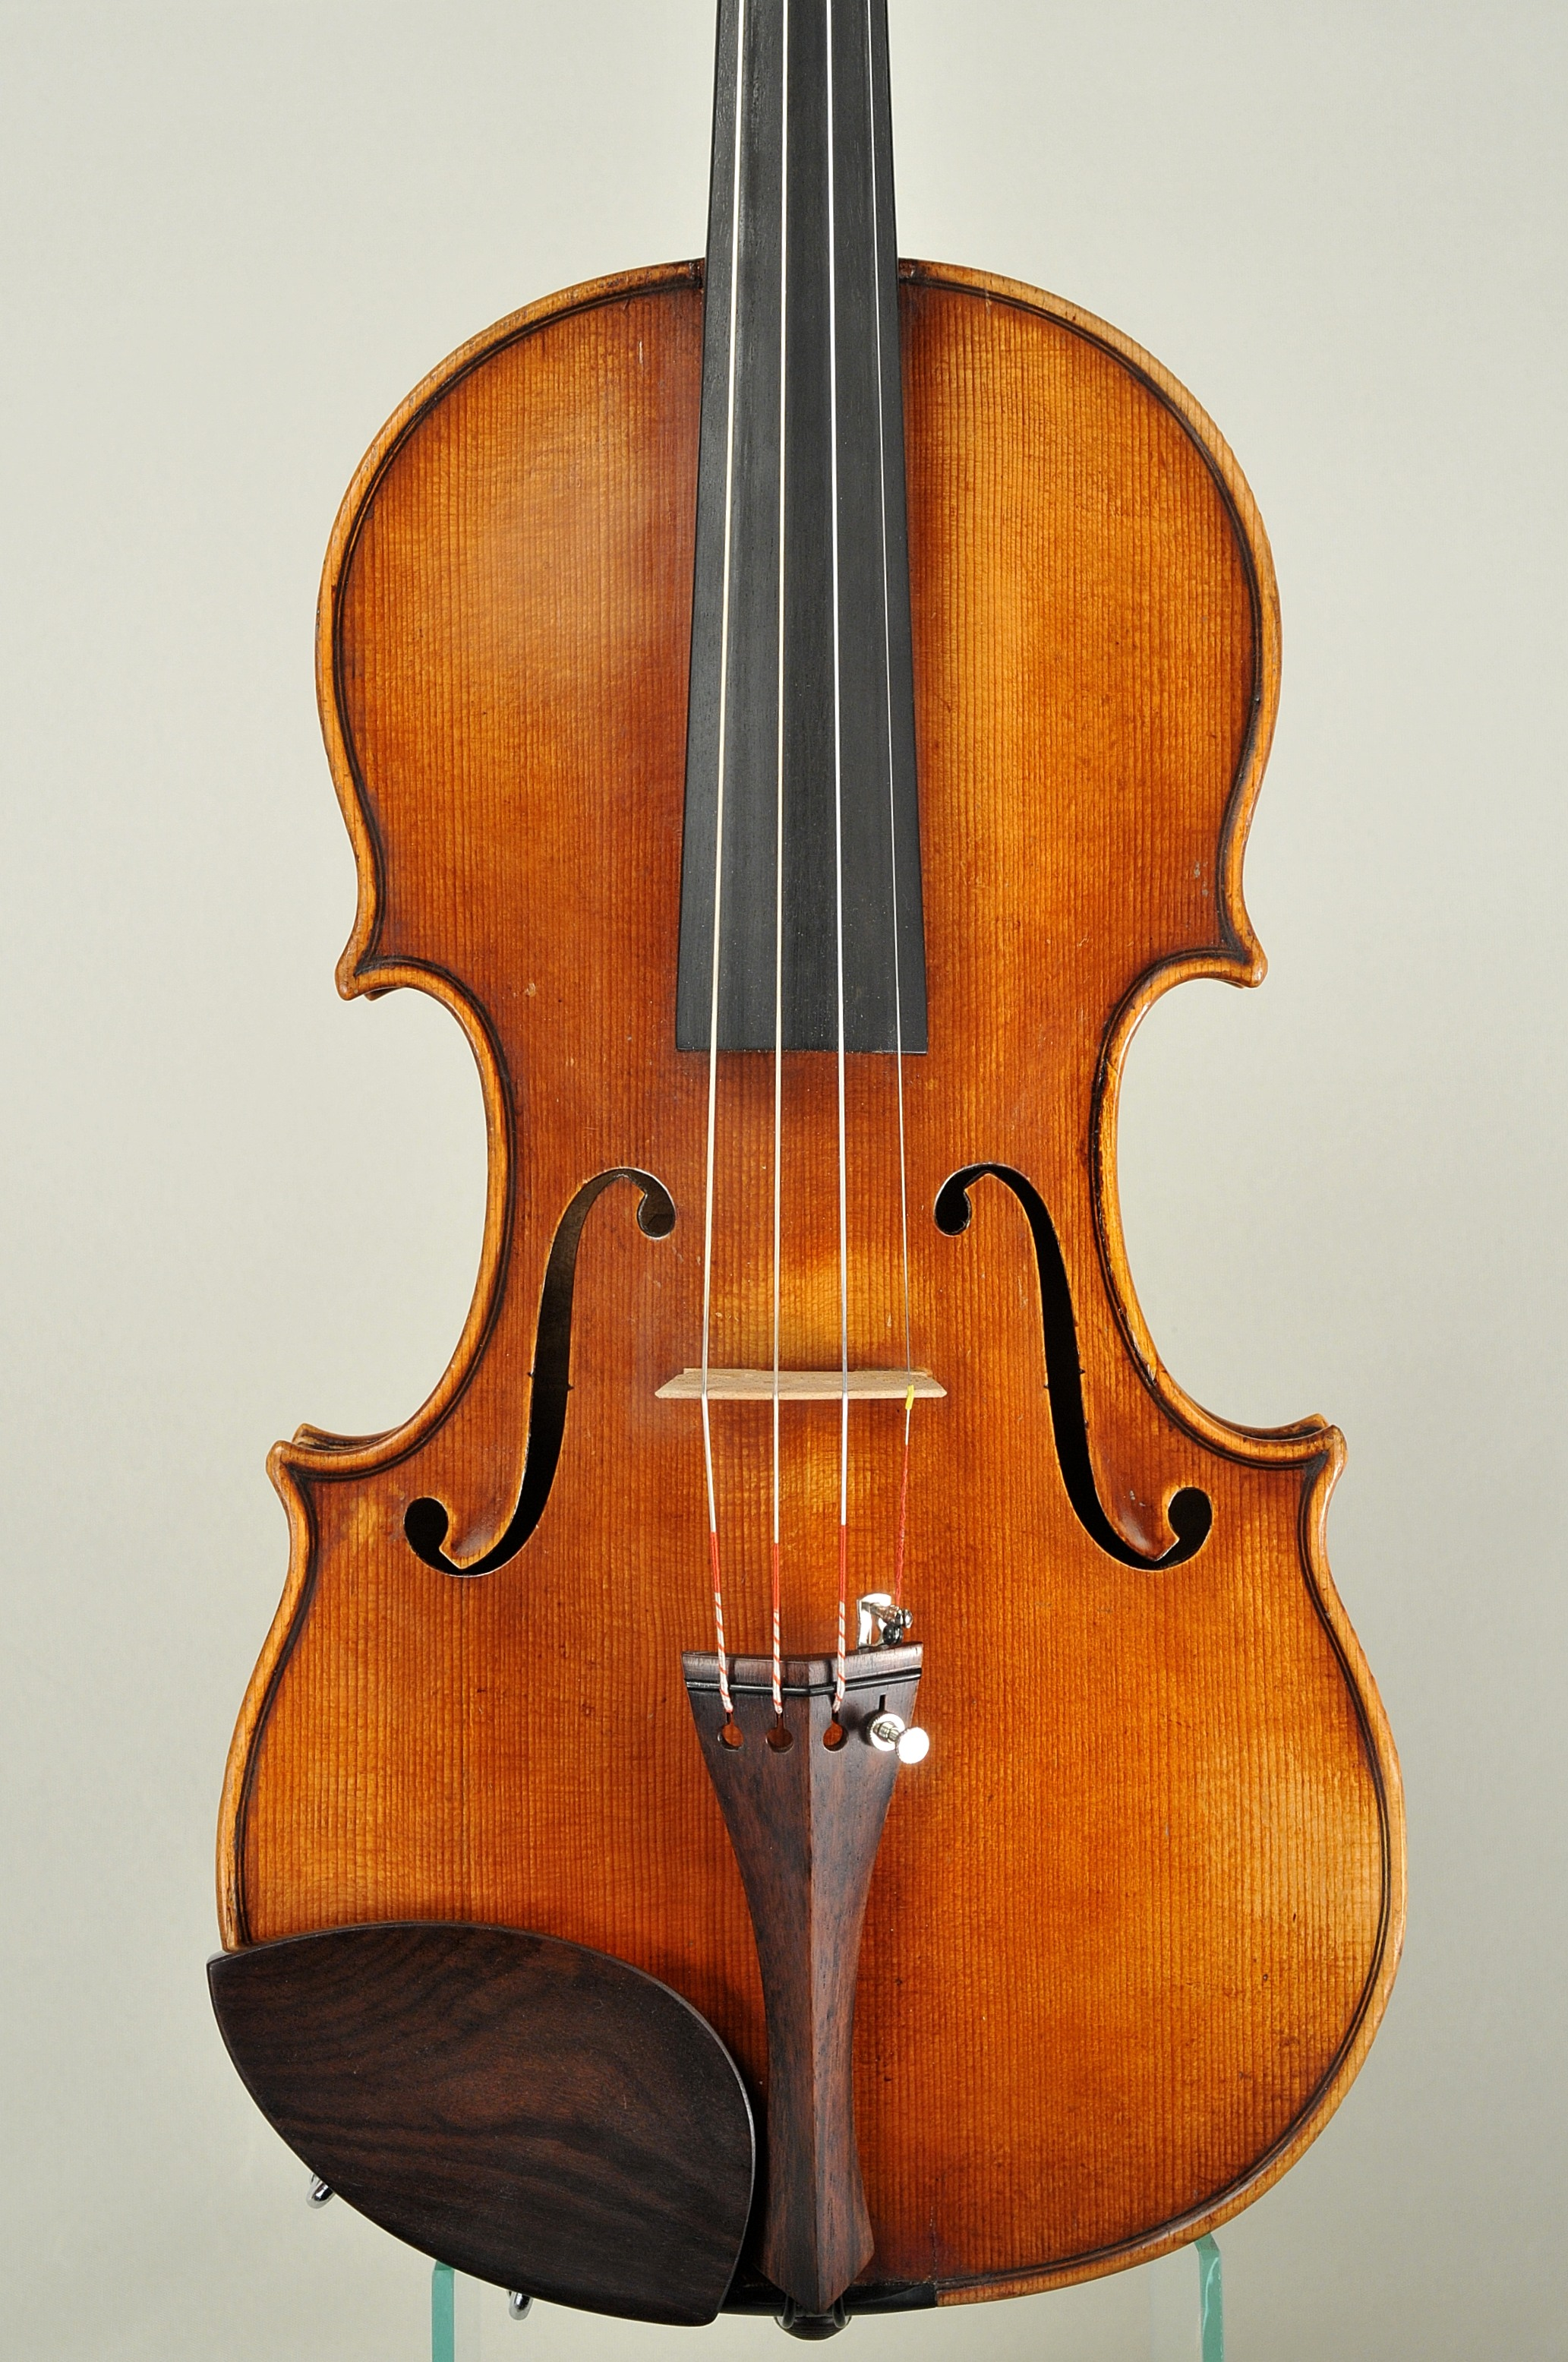 Mathias Heinicke 1873-1956 Violin, Wildstein 1950